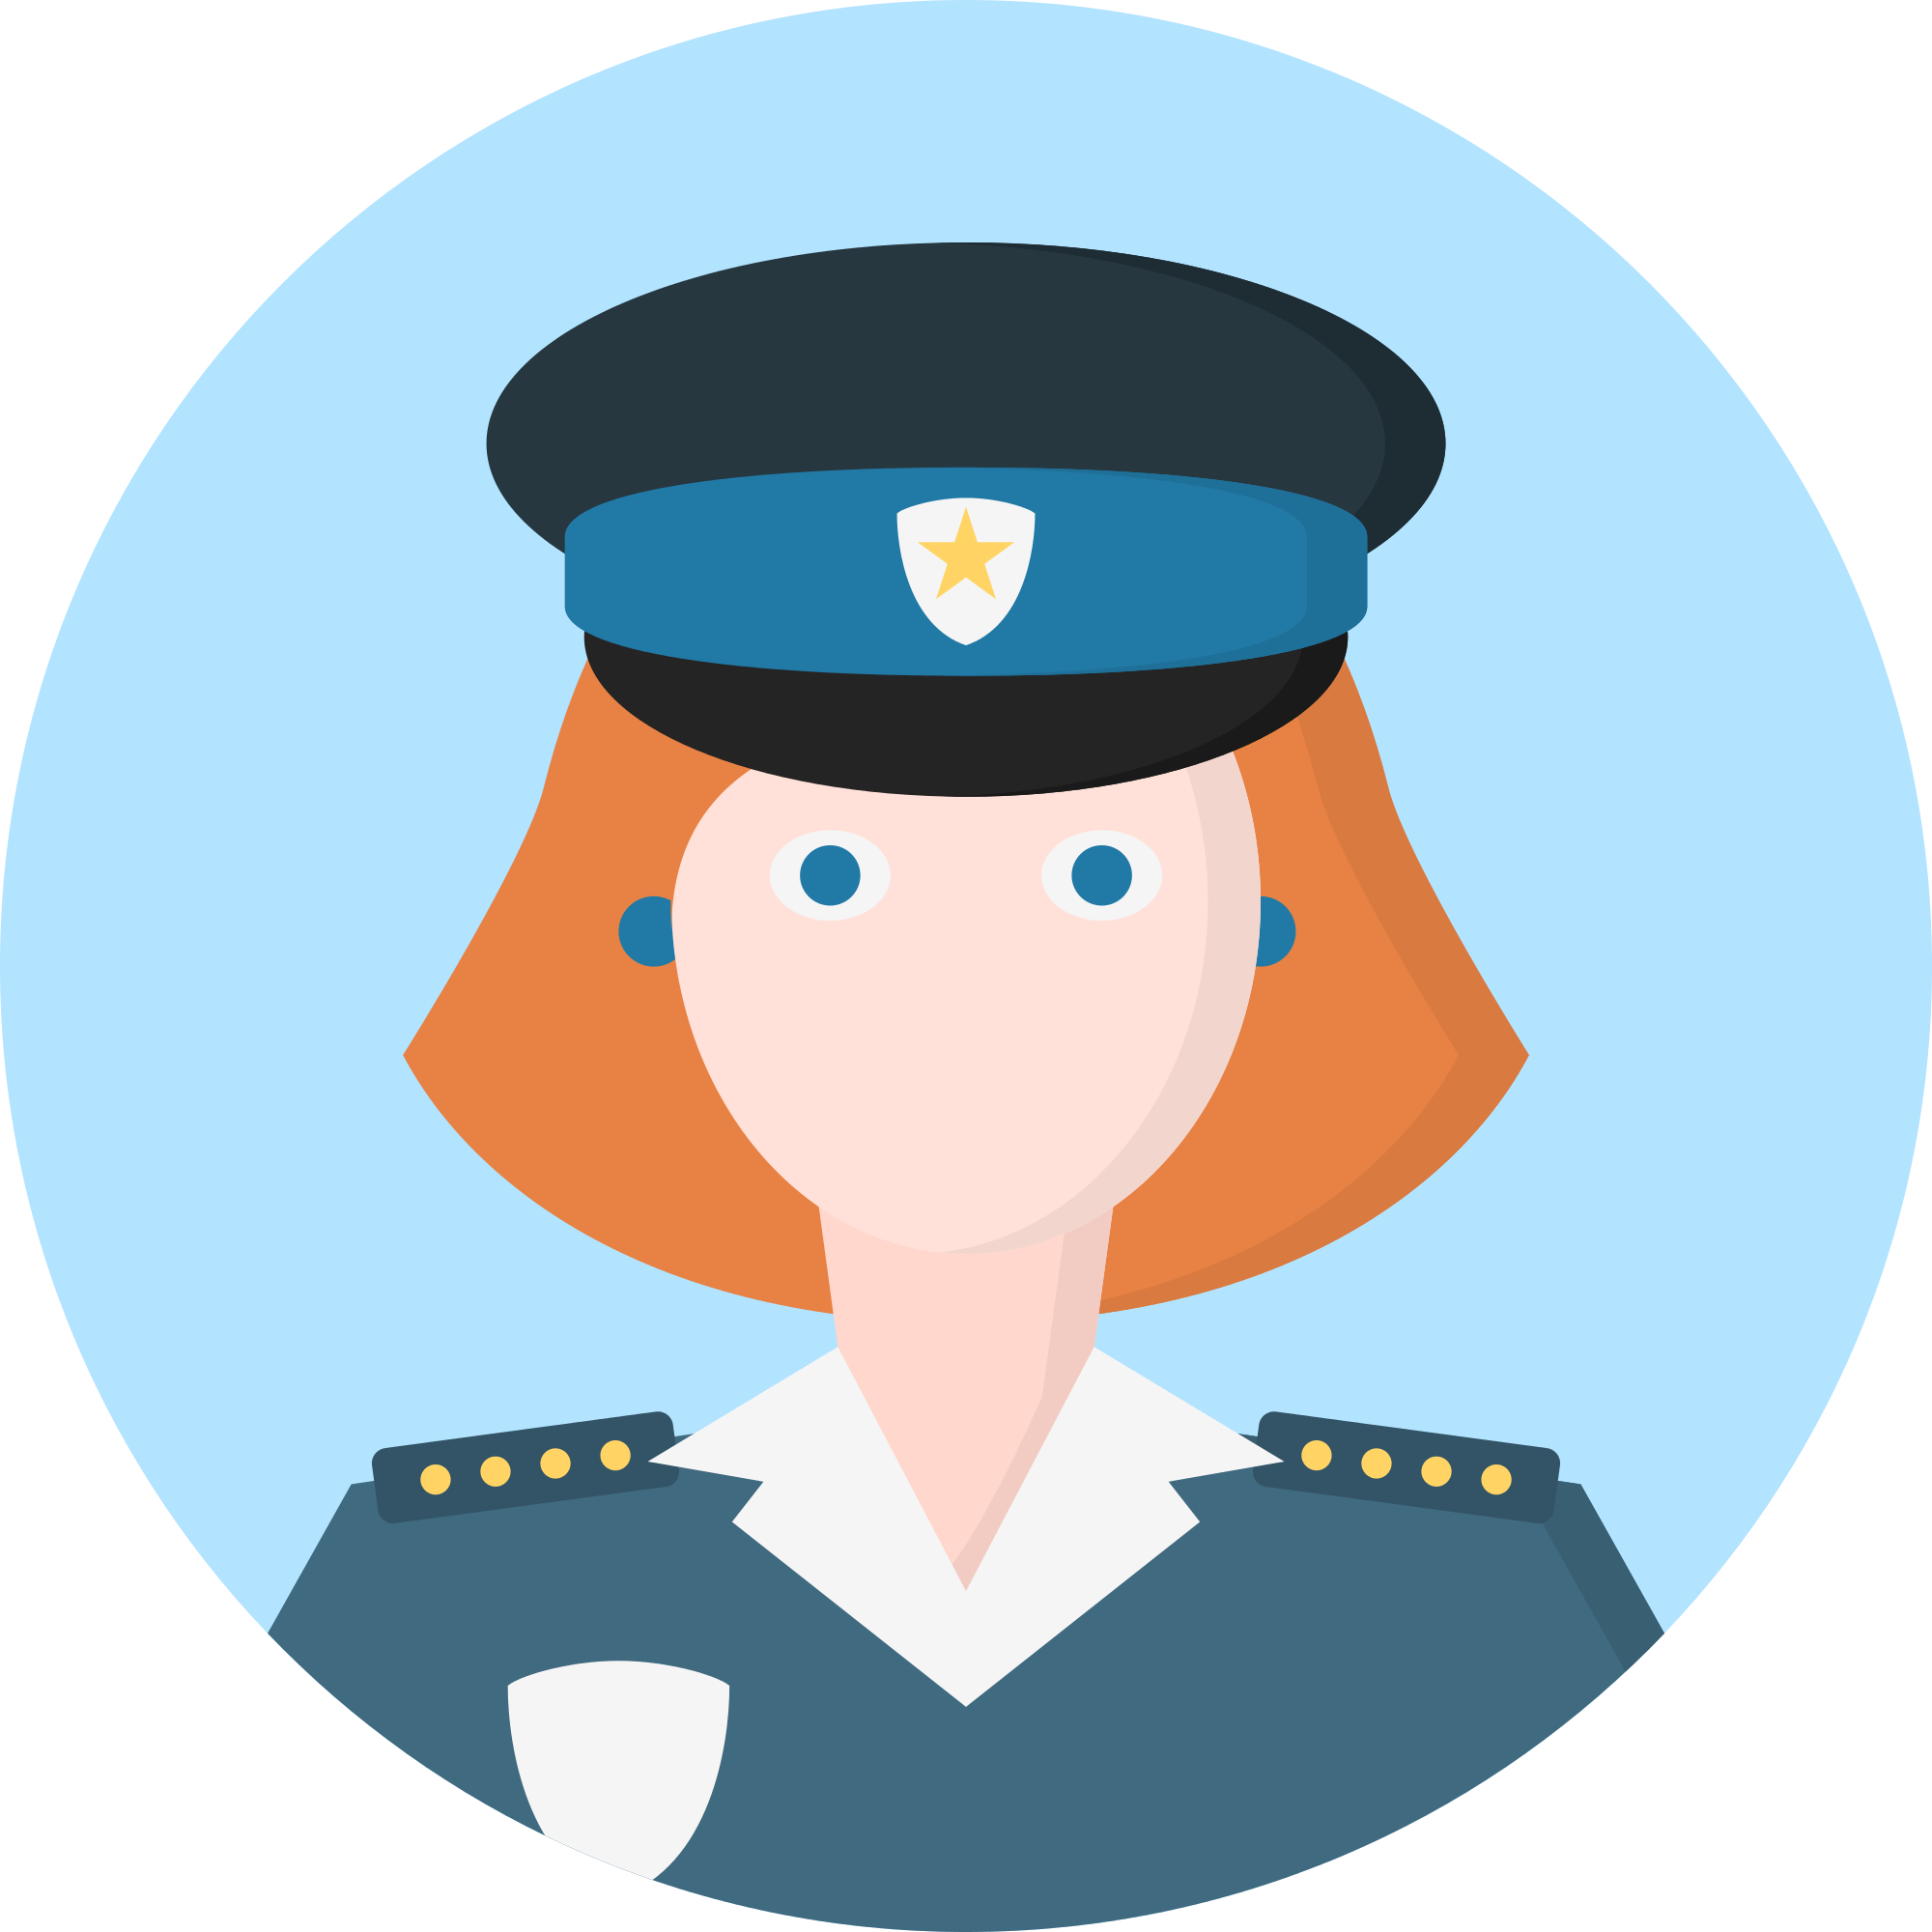 Tool clipart police officer. File creative tail people